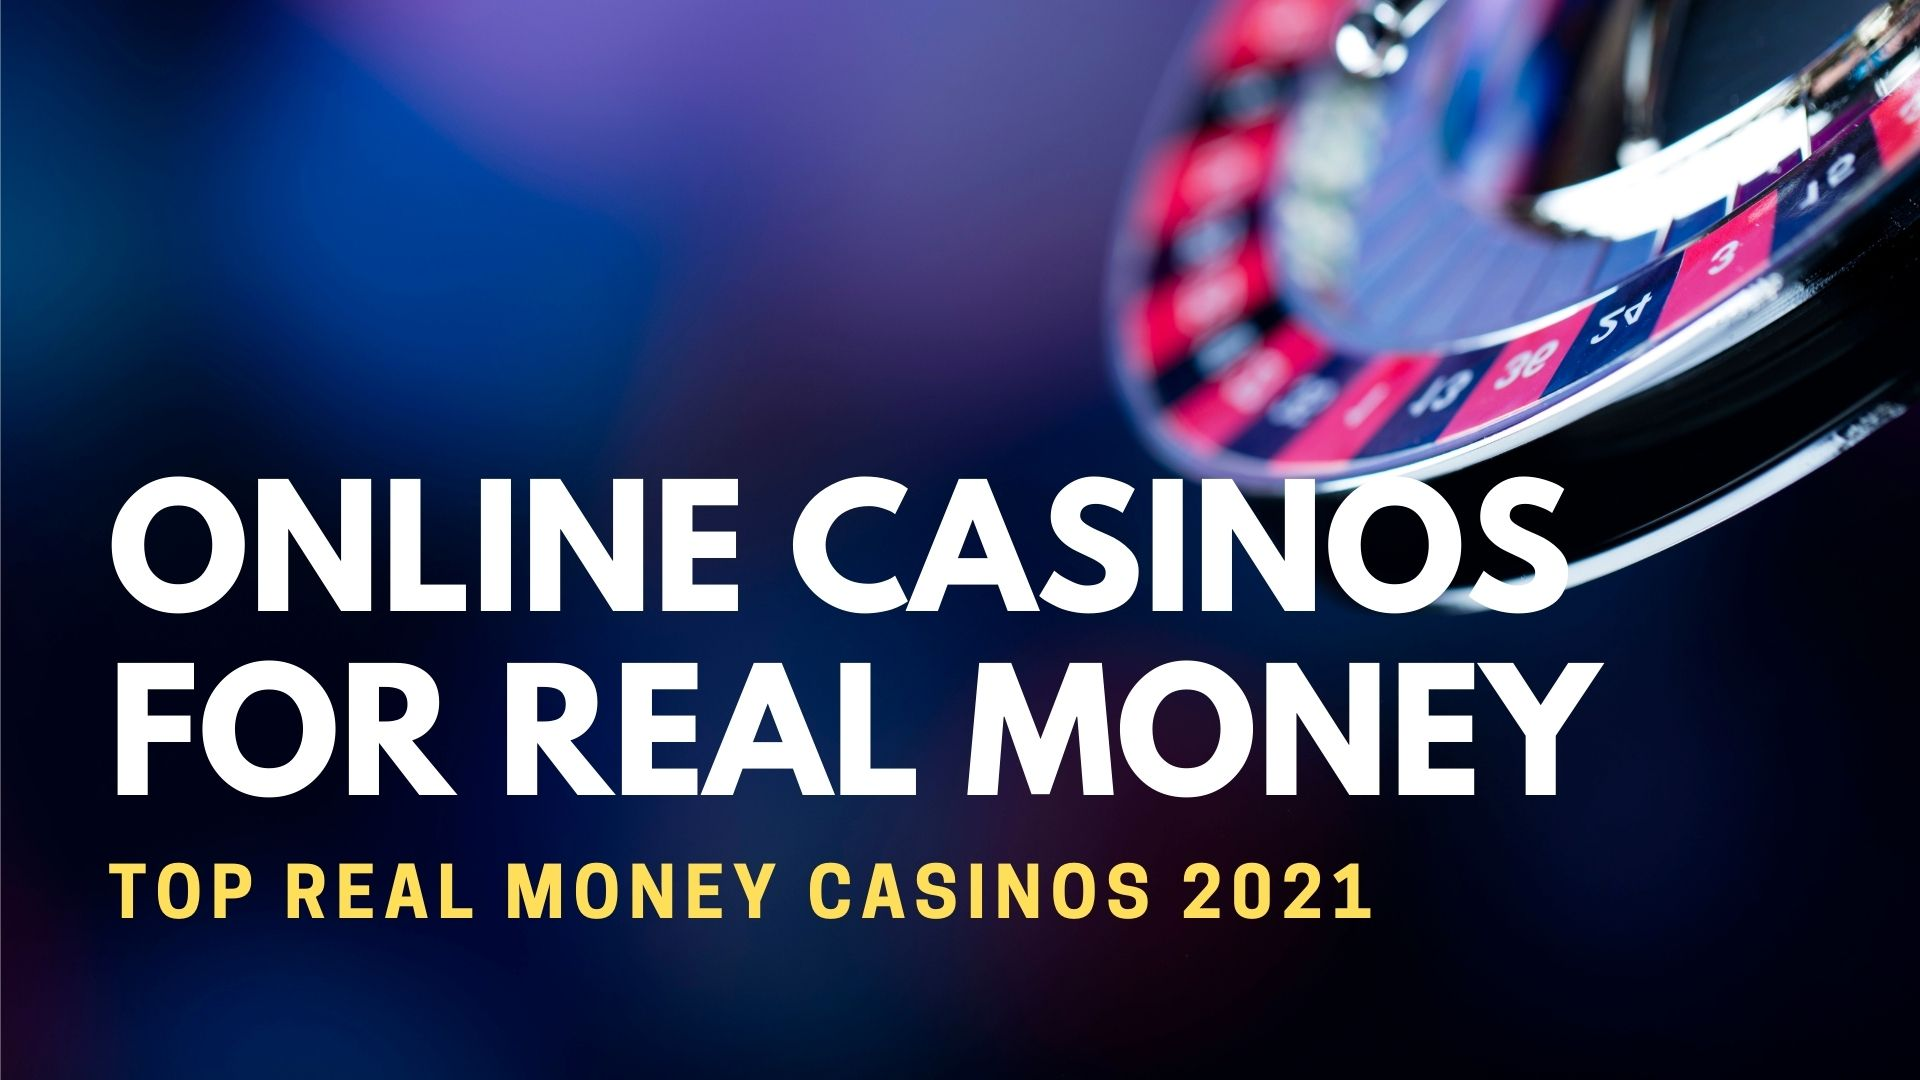 Online Casinos For Real Money Top Real Money Casinos 2021